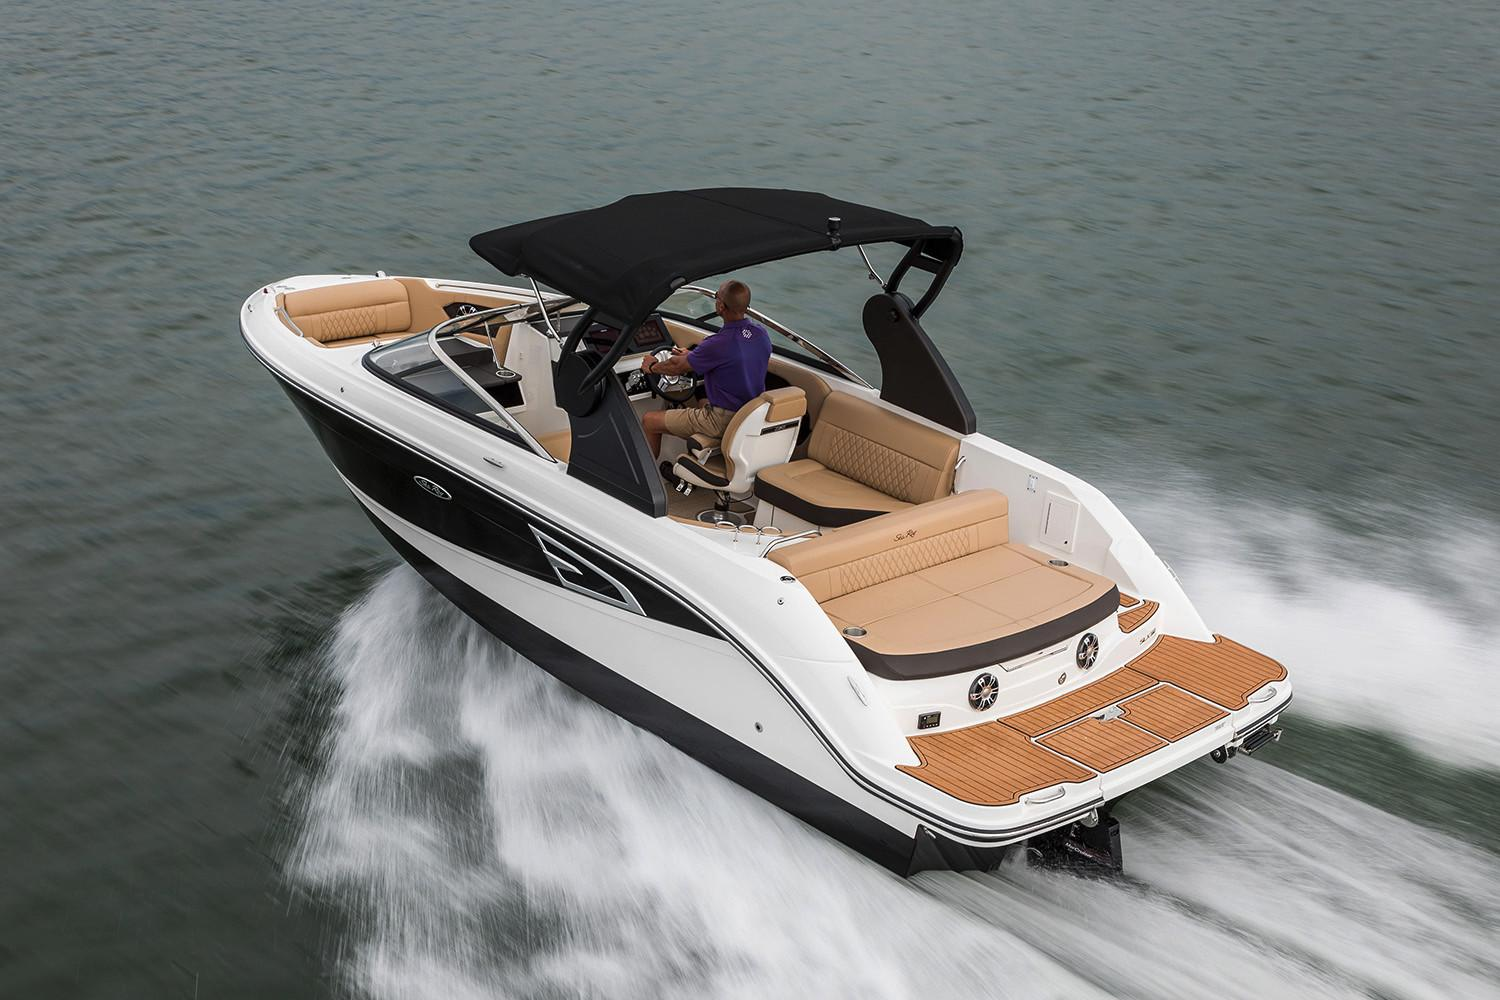 2020 Sea Ray SLX 230 in Holiday, Florida - Photo 3